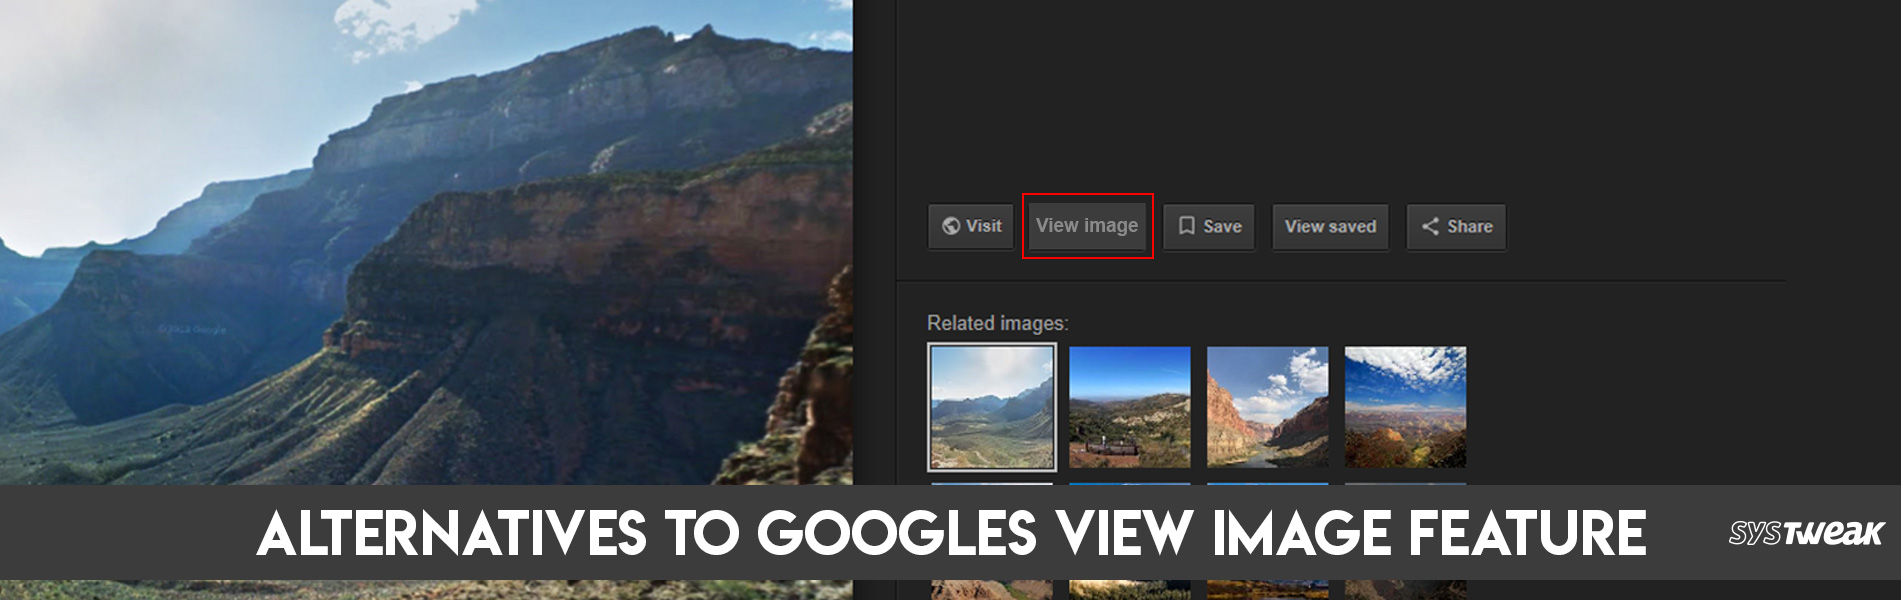 Google Removes 'View Image' Feature, Here Are Four Alternatives You Can Use